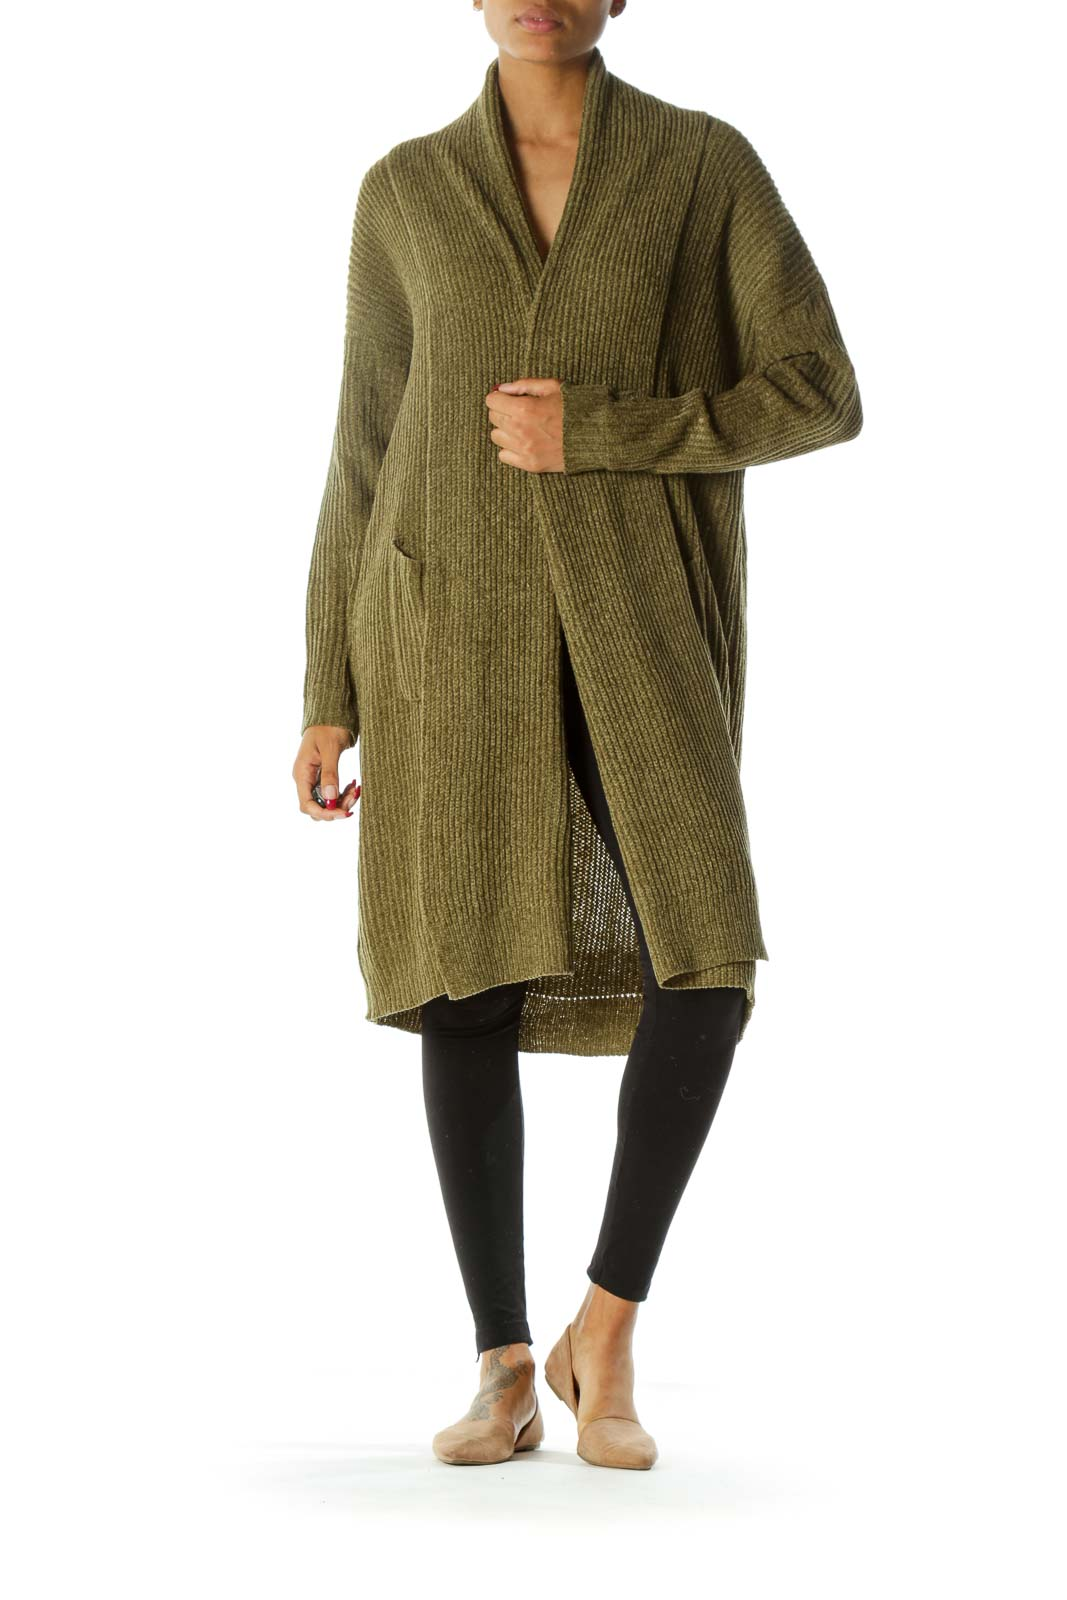 Green Ribbed Knit Open Pocketed Long Sleeve Chunky Cardigan